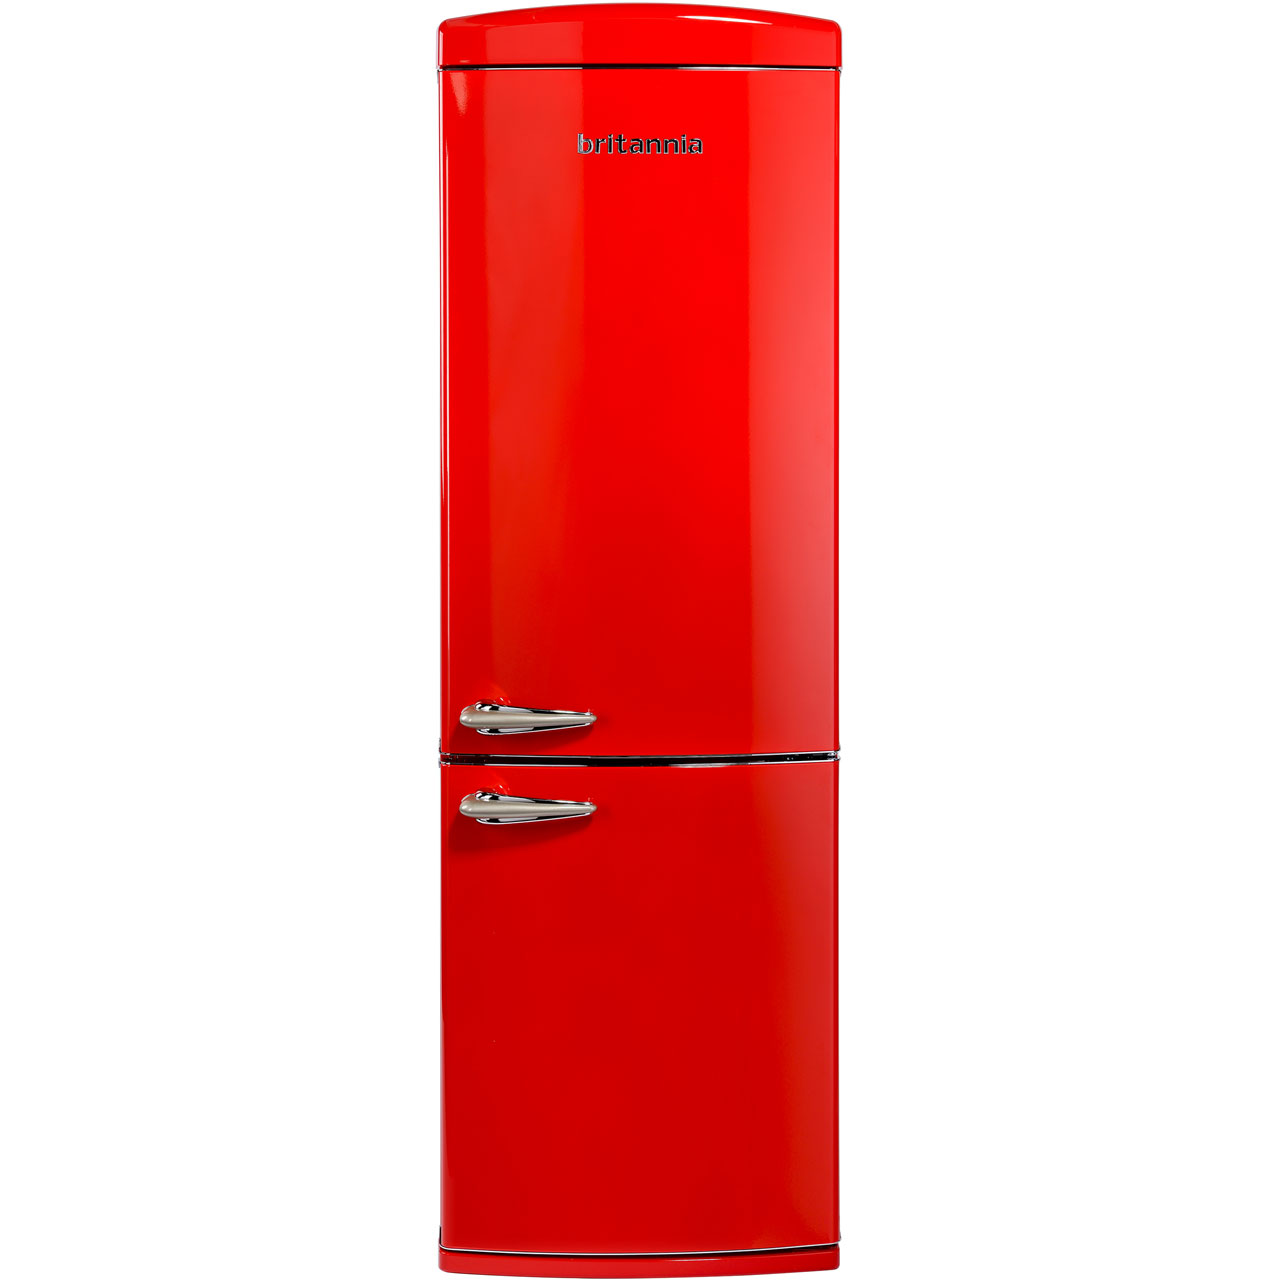 Britannia Breeze Retro 544446250 Free Standing Fridge Freezer Frost Free in Red